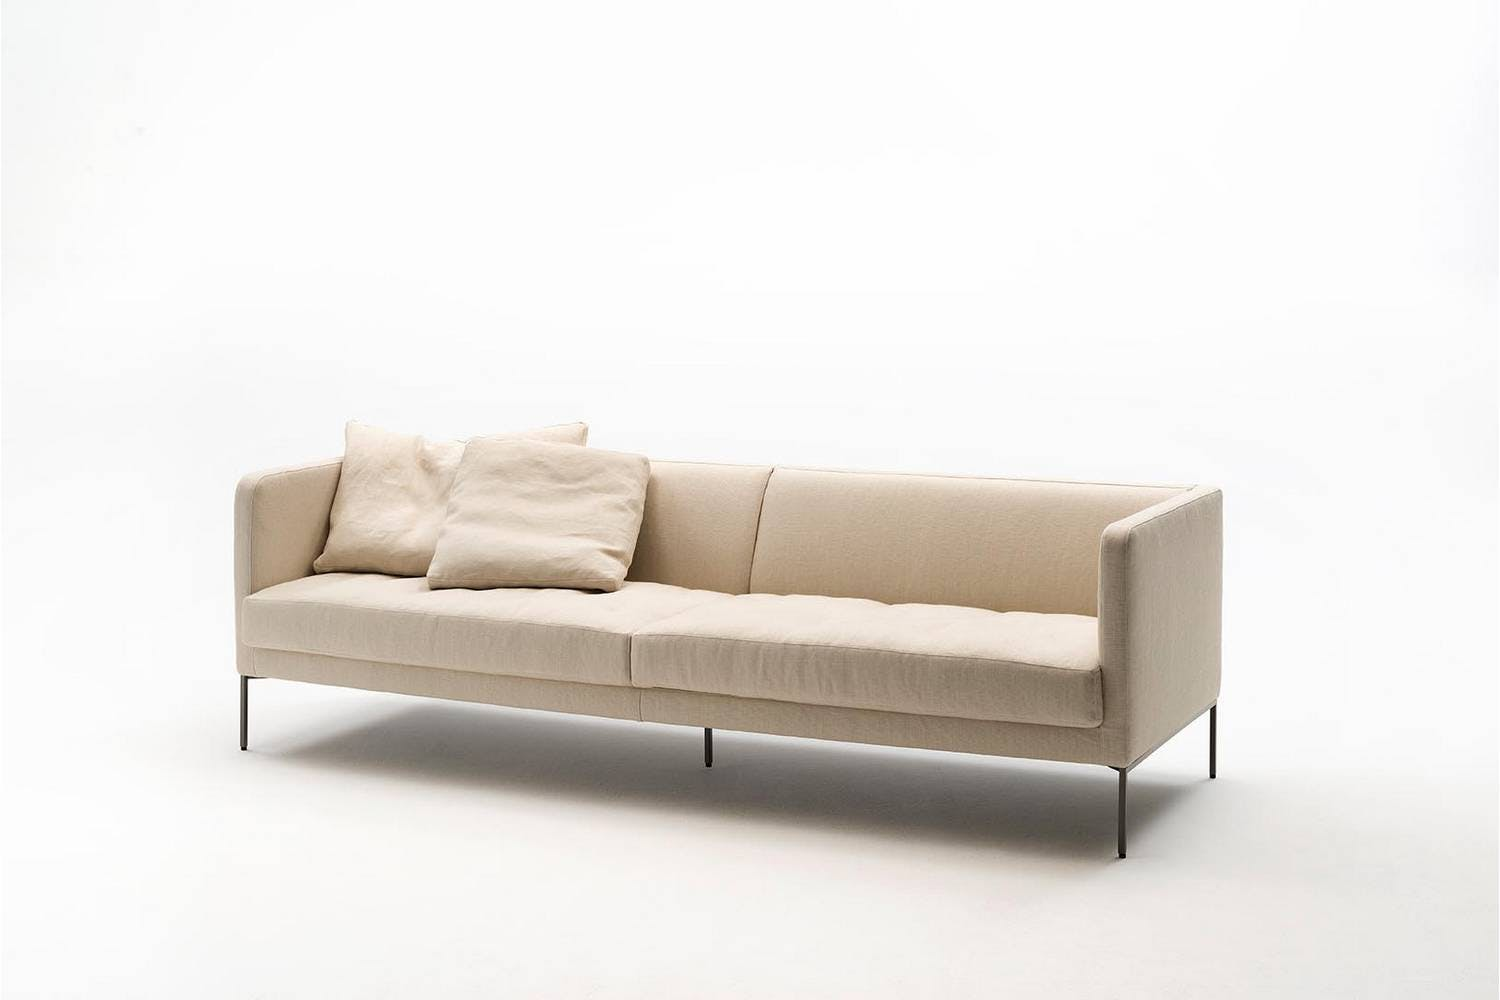 easy lipp sofa by piero lissoni for living divani space. Black Bedroom Furniture Sets. Home Design Ideas